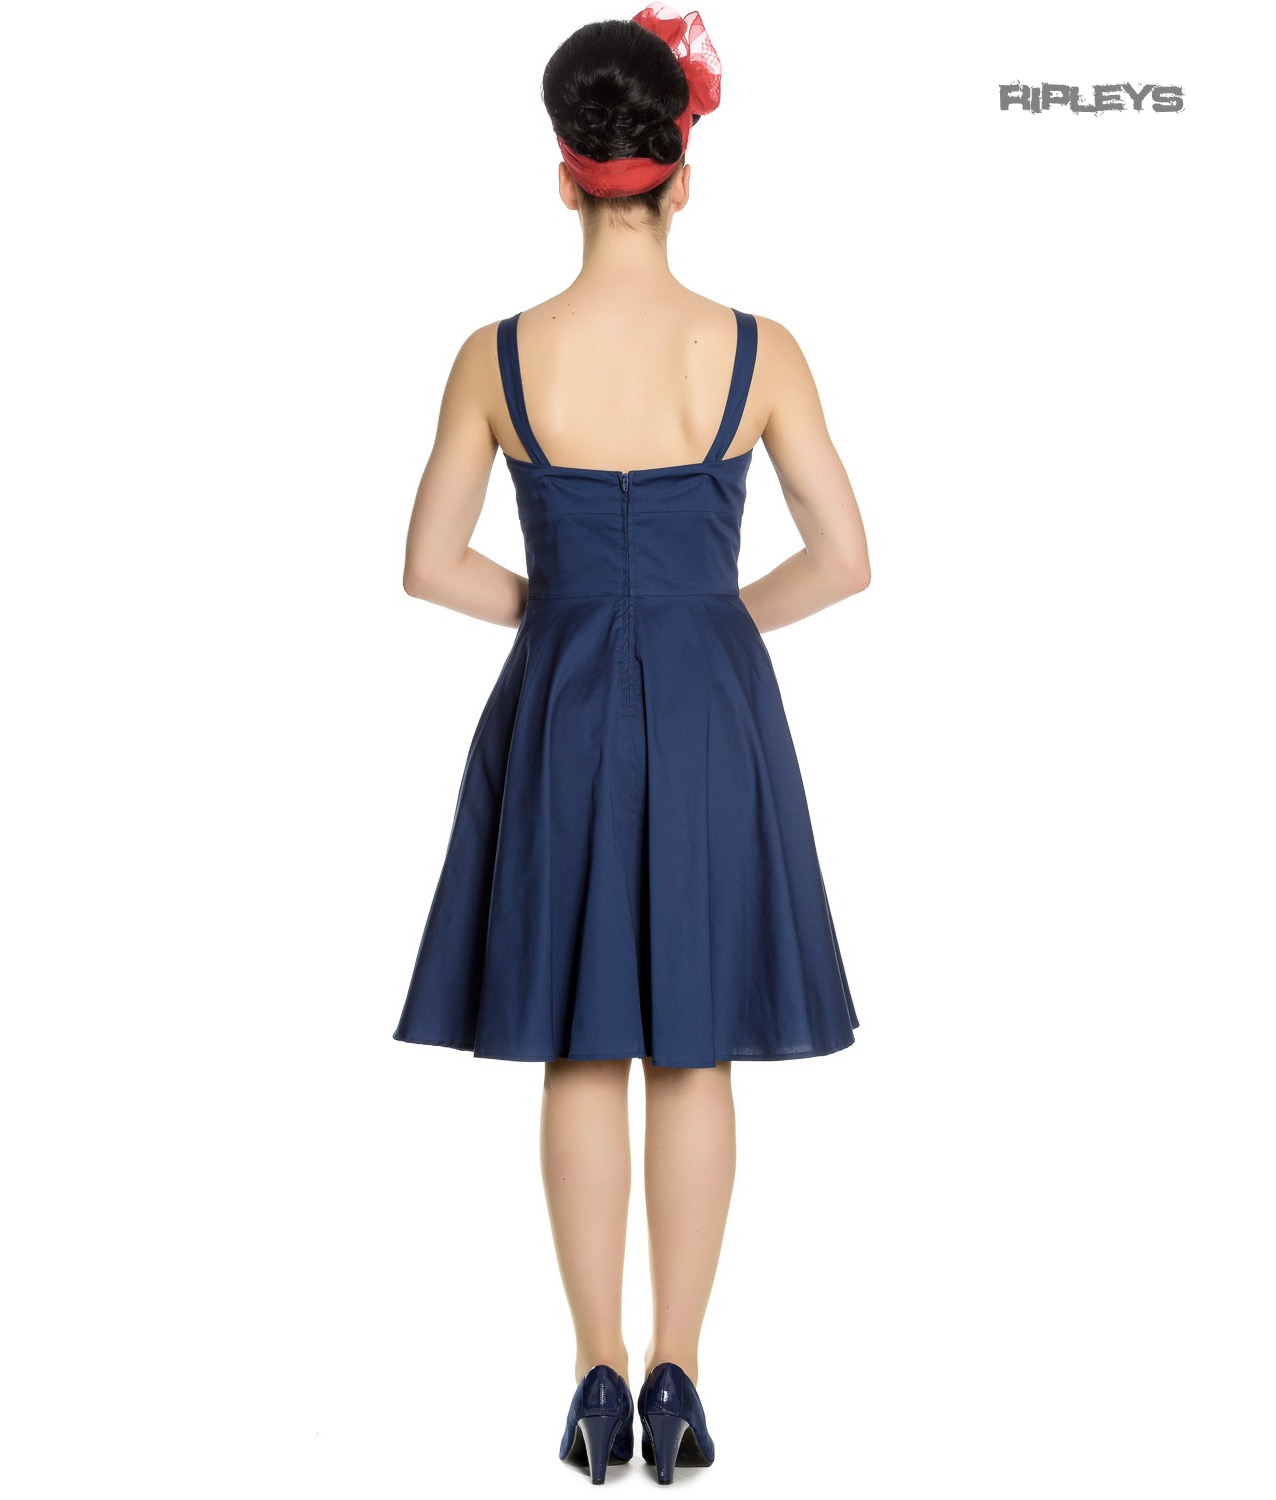 Hell-Bunny-Vintage-50s-Pin-Up-Dress-Navy-Blue-SELA-Nautical-Anchors-All-Sizes thumbnail 32